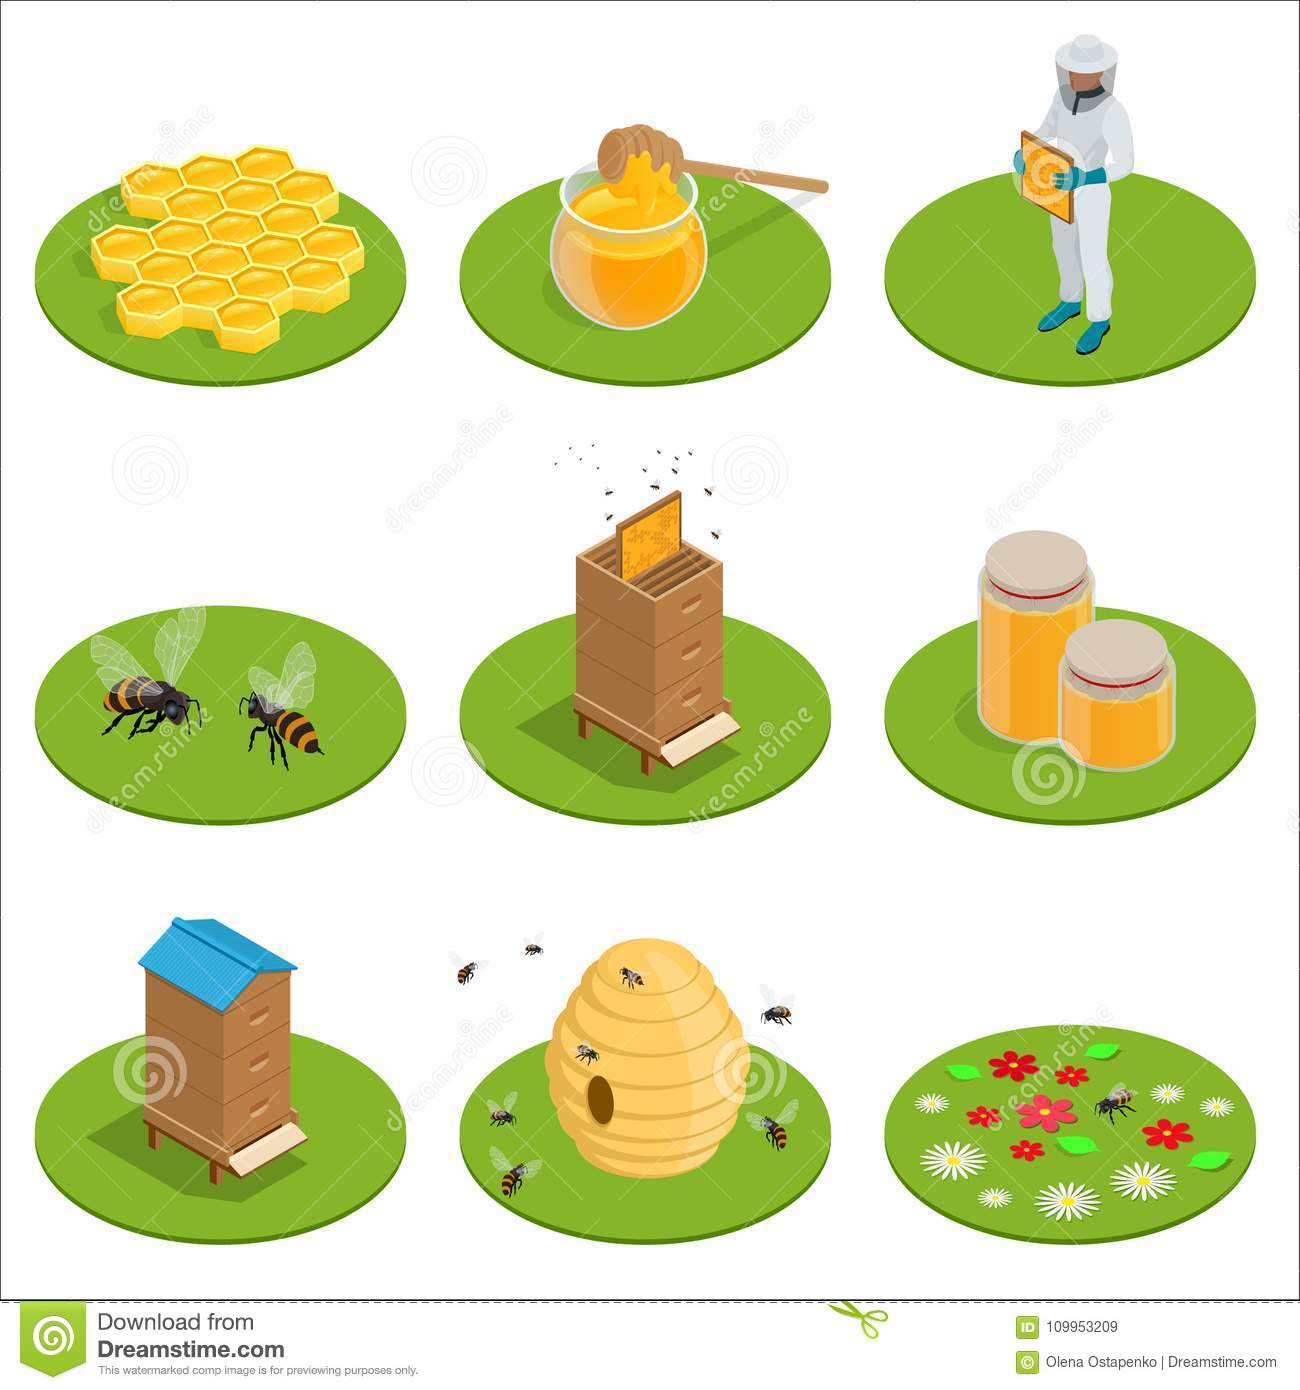 Isometric Honey isolated icons set with bees, beekeeper works on an apiary, hive, bee, honeycomb. Vector illustration